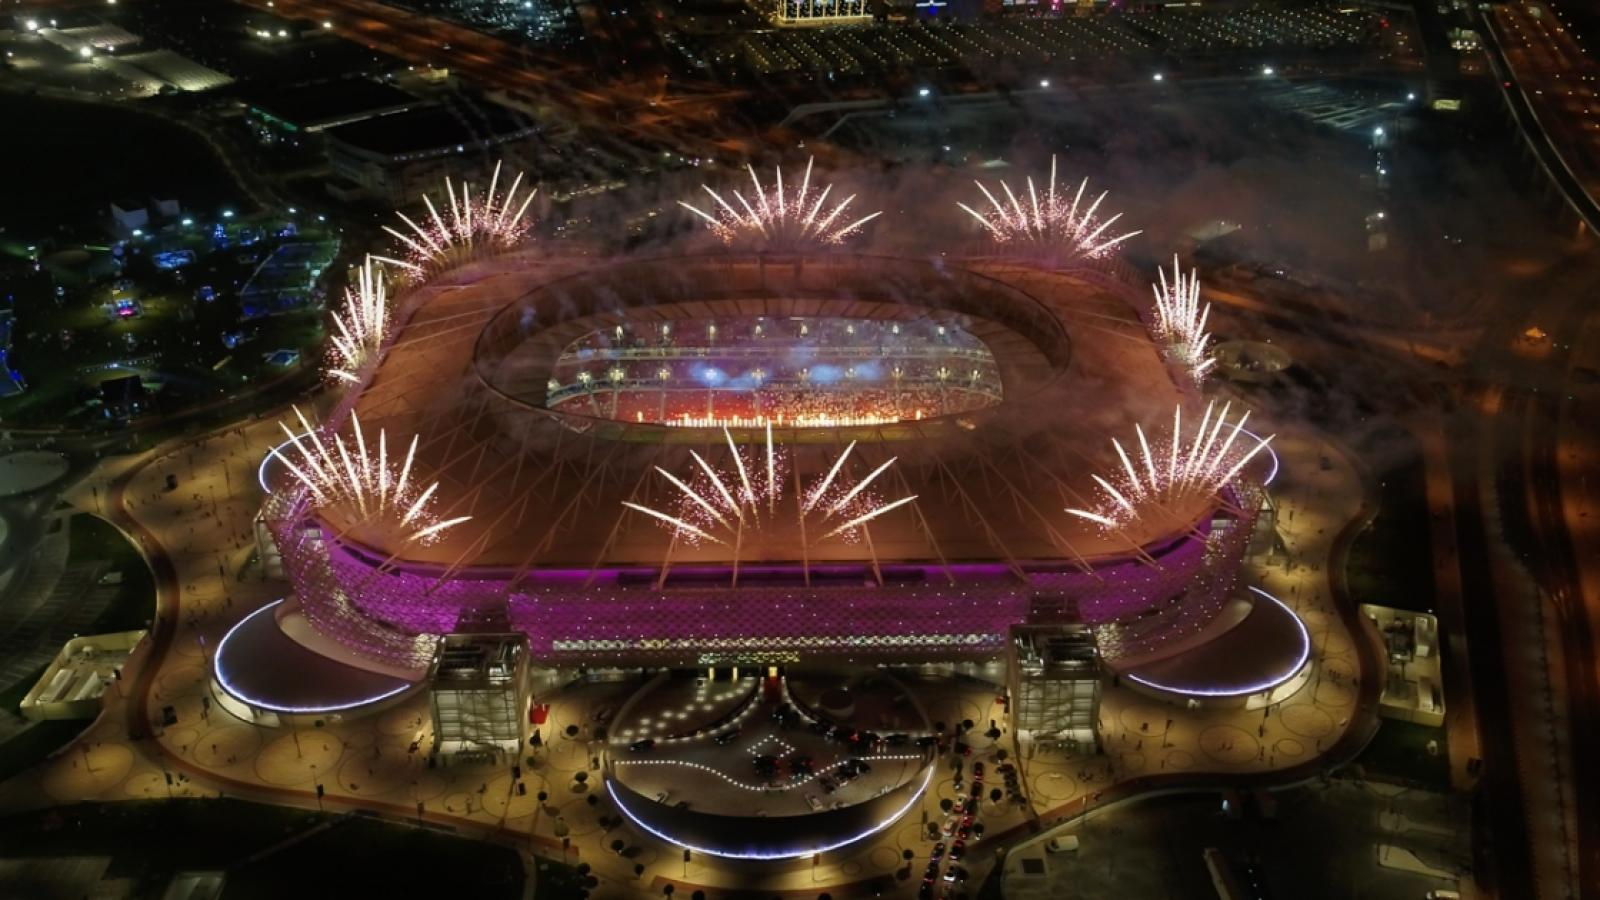 Ahmad Bin Ali Stadium unveiled to the world with spectacular launch